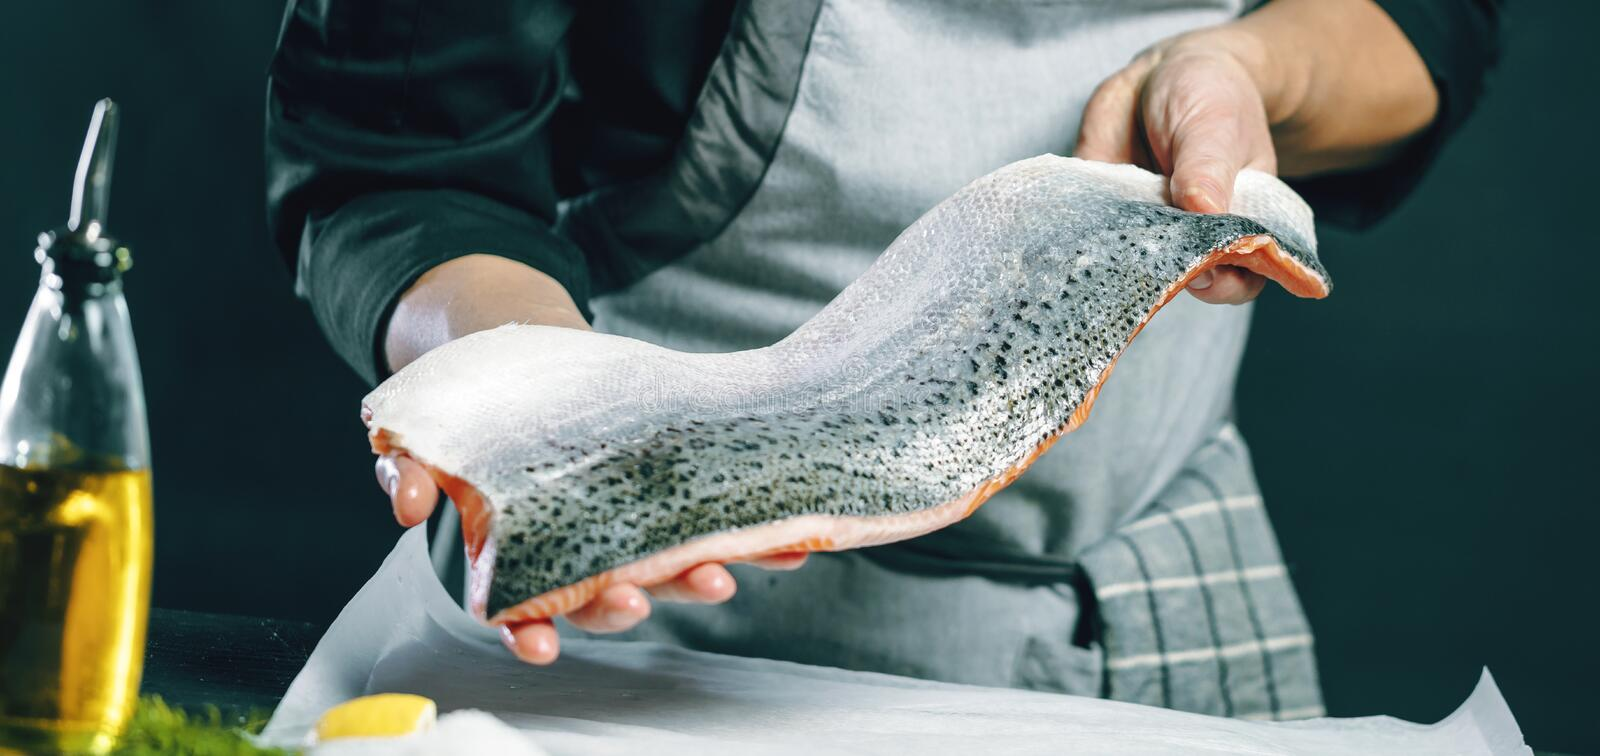 Chef cutting and cooking big salmon in a restaurant kitchen royalty free stock photography